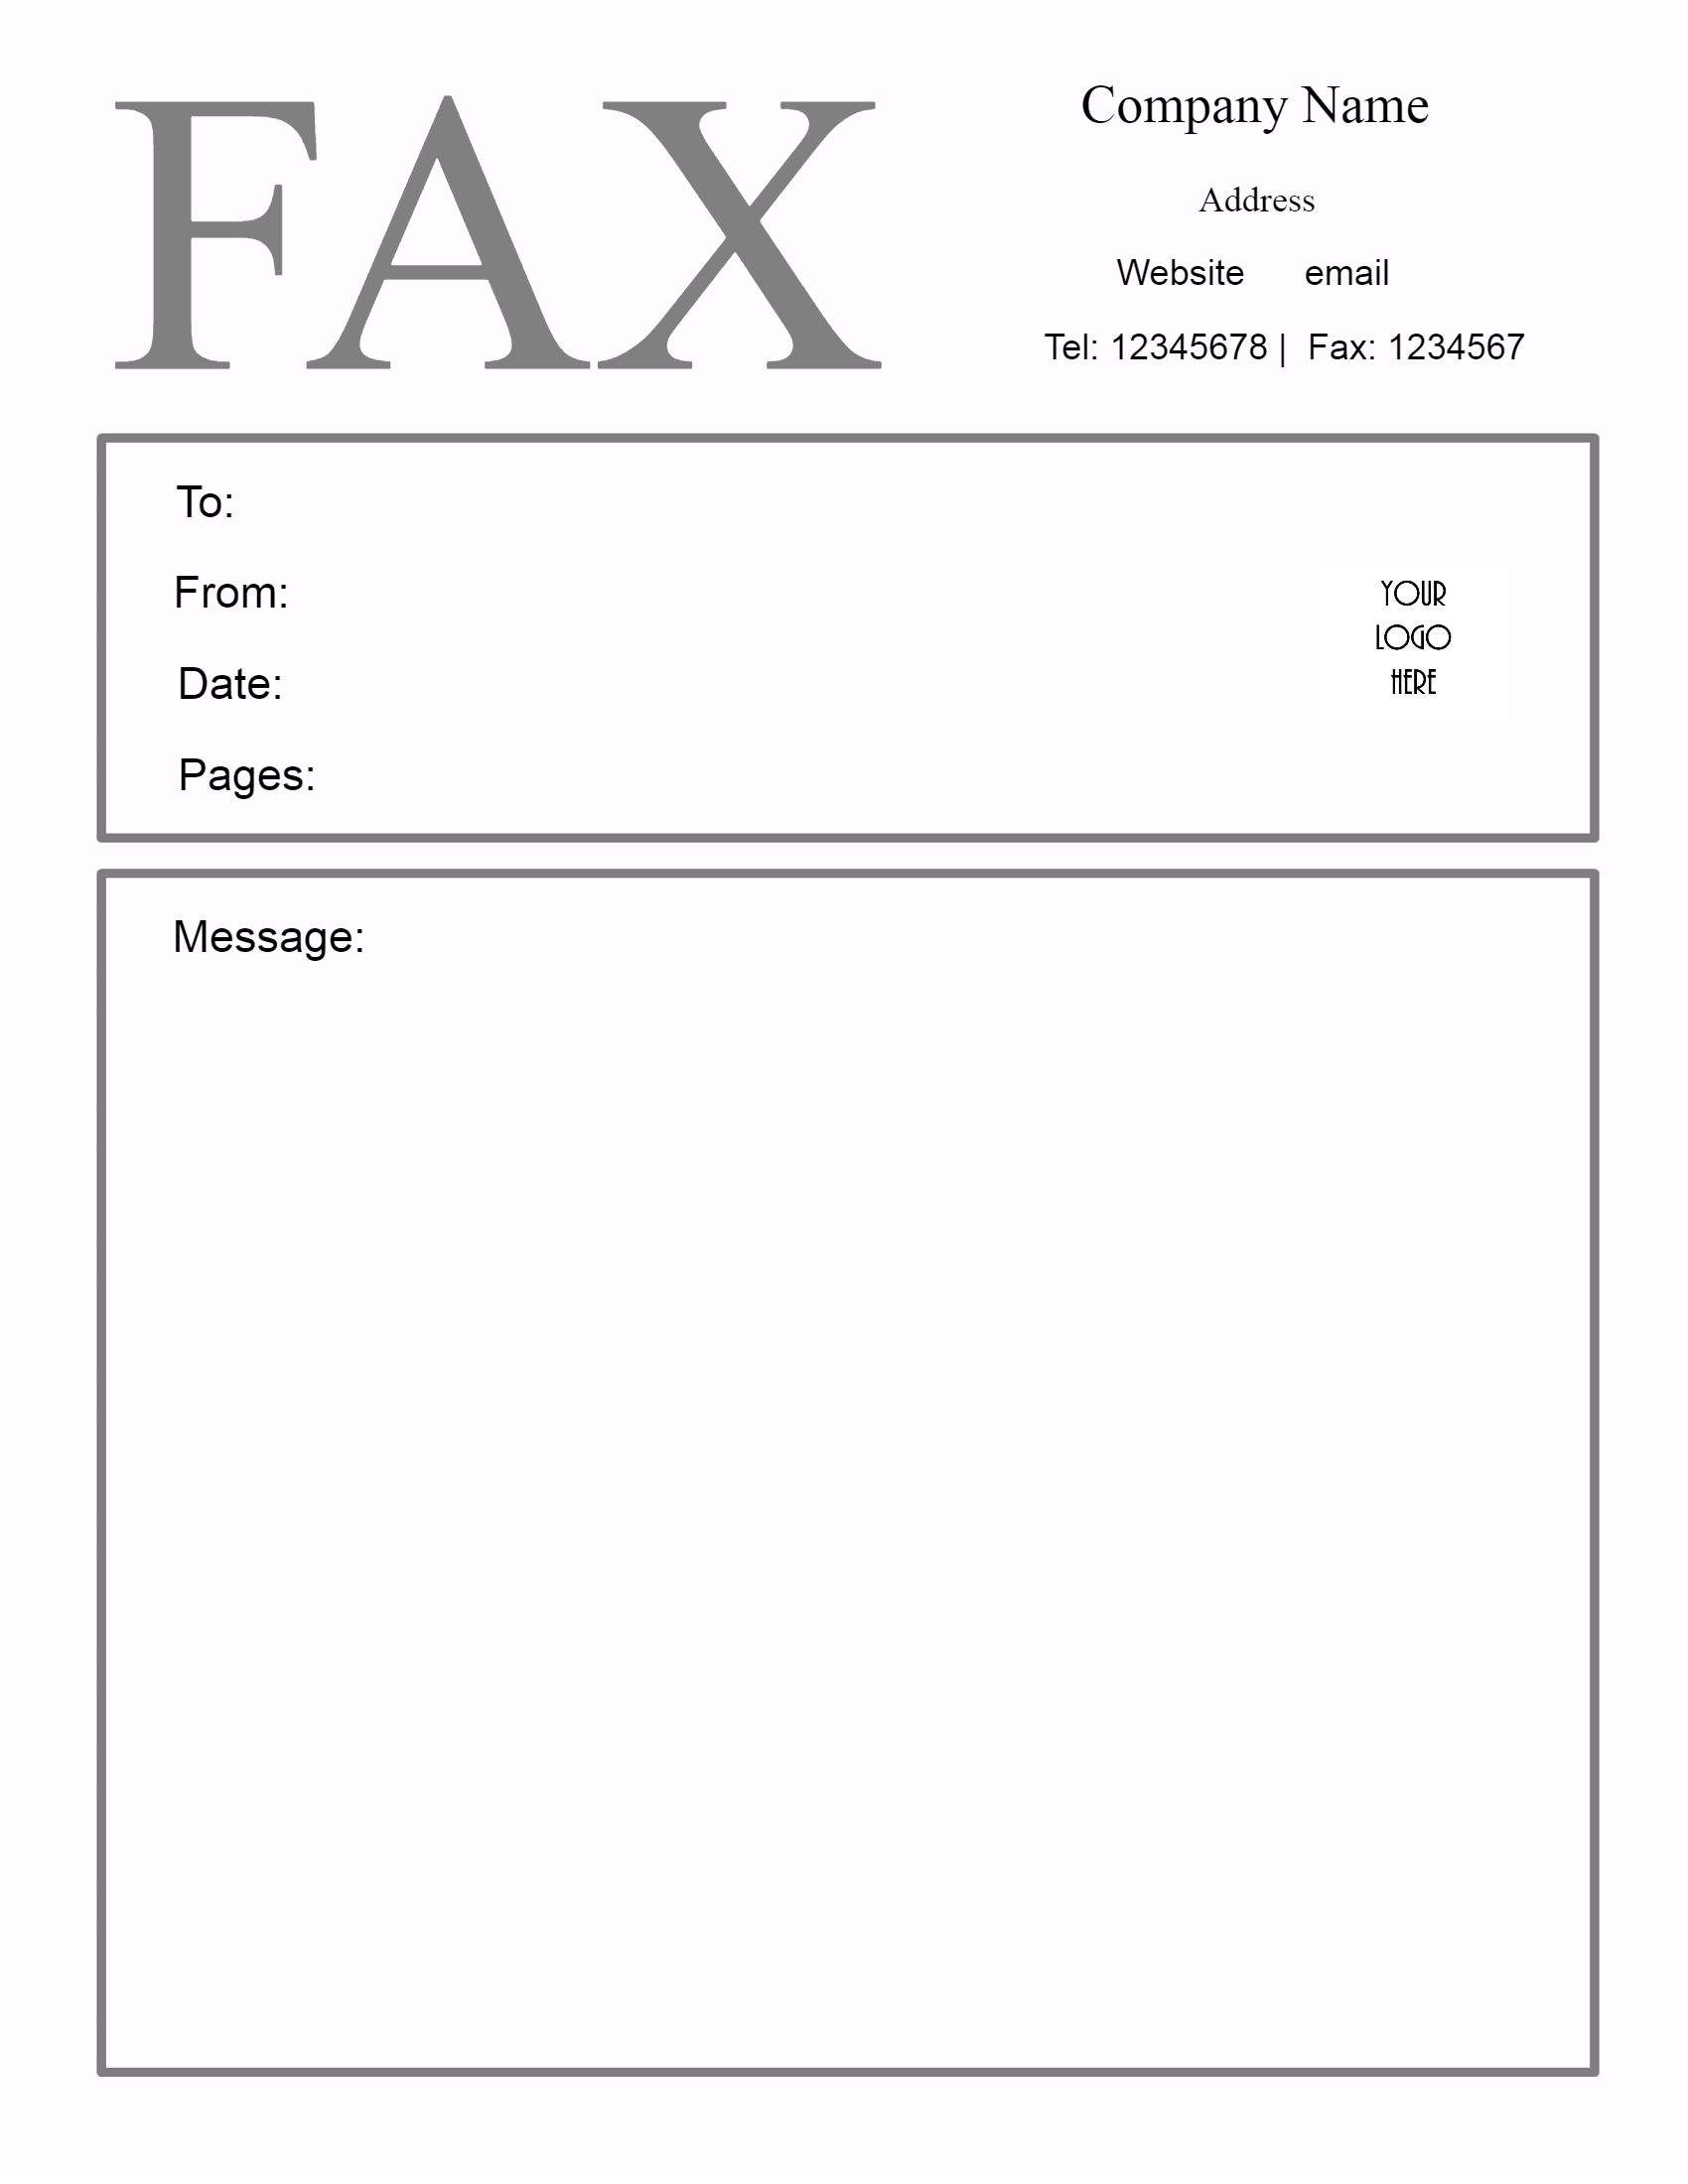 Nerdy image for downloadable fax cover sheets